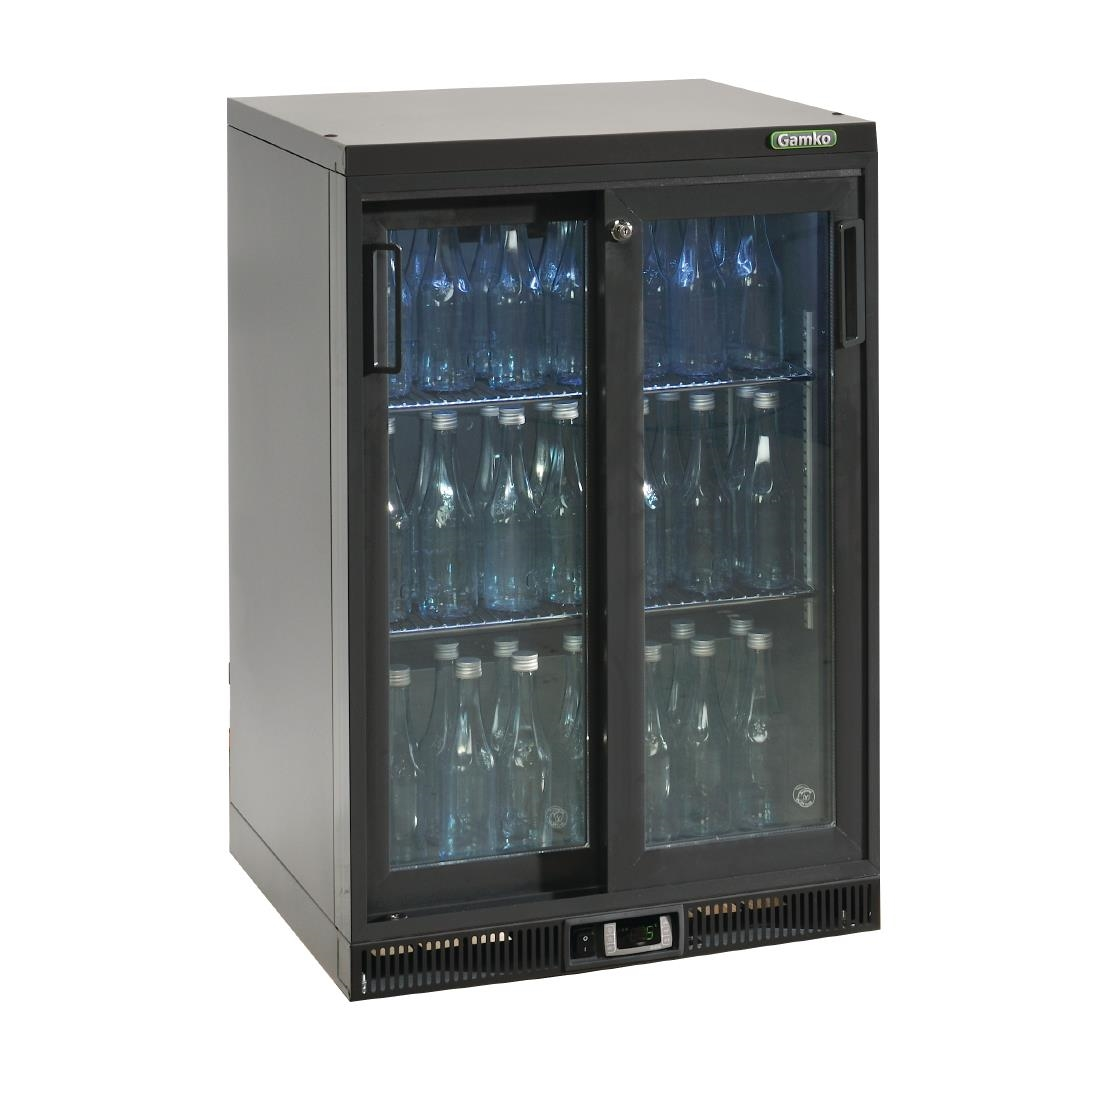 Gamko Bottle Cooler - Single Sliding Door 150 Ltr